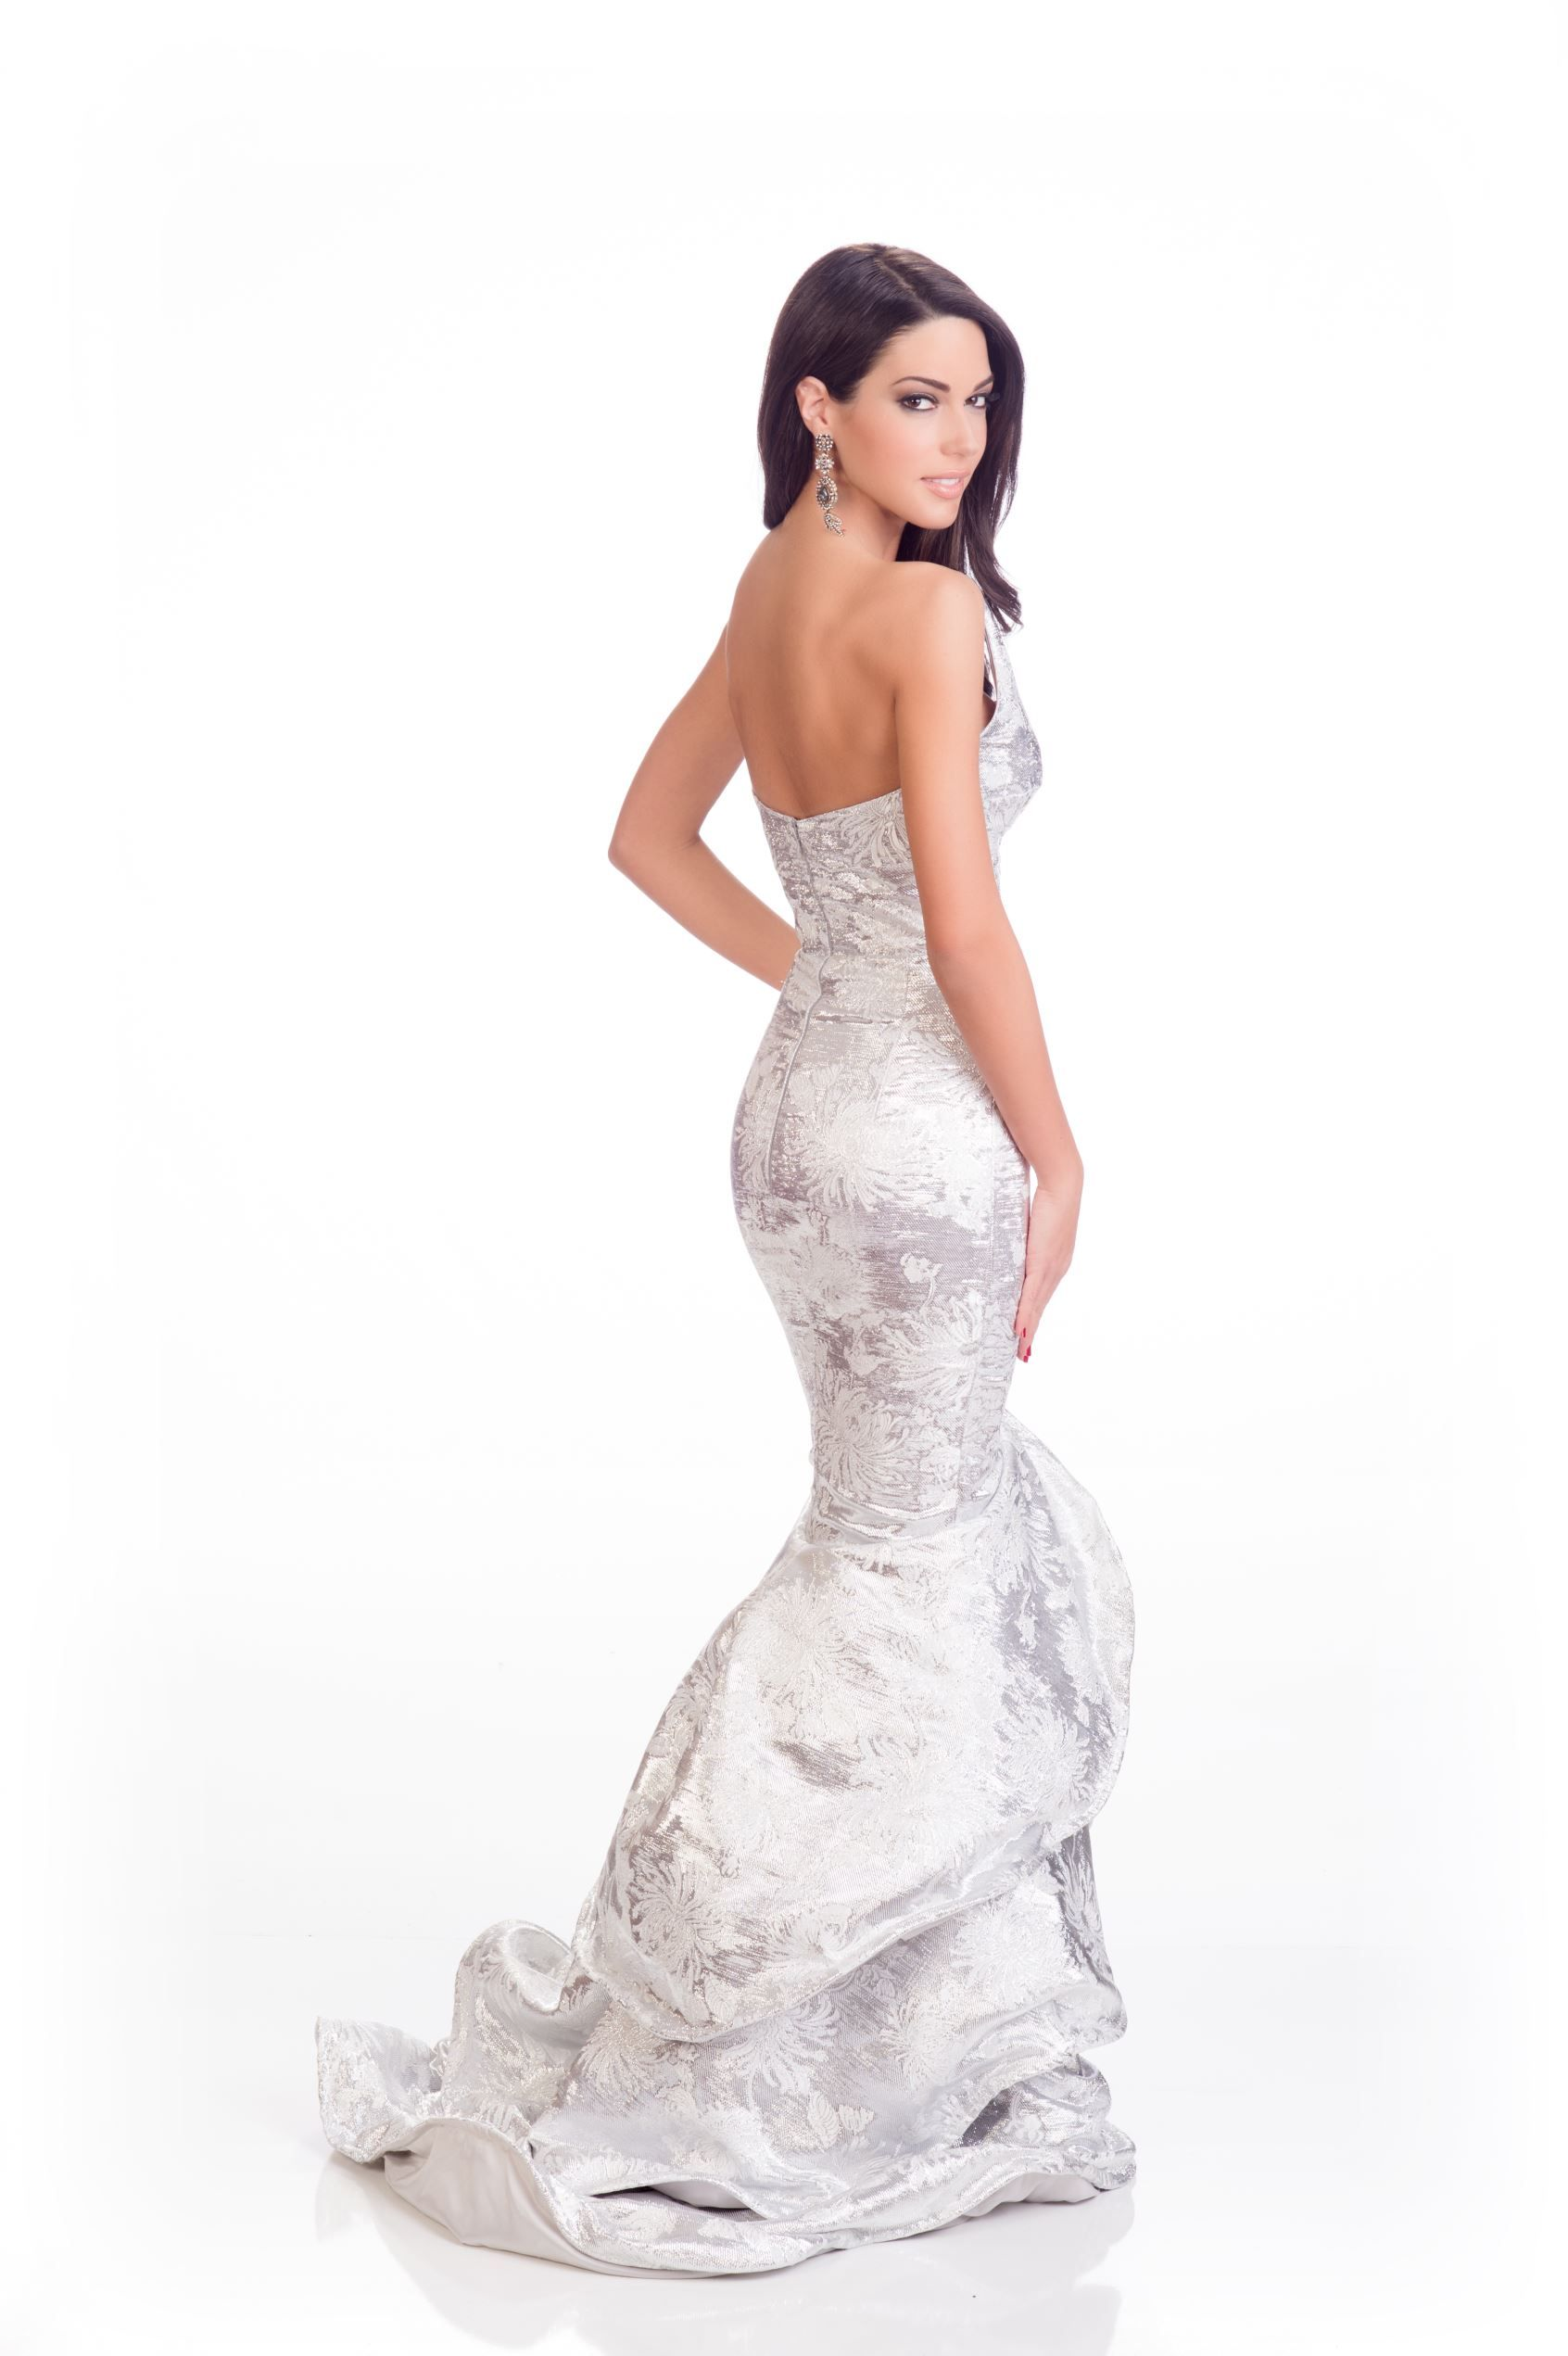 Ismini Dafopoulou, Miss Greece, looks like a goddess in her white ...